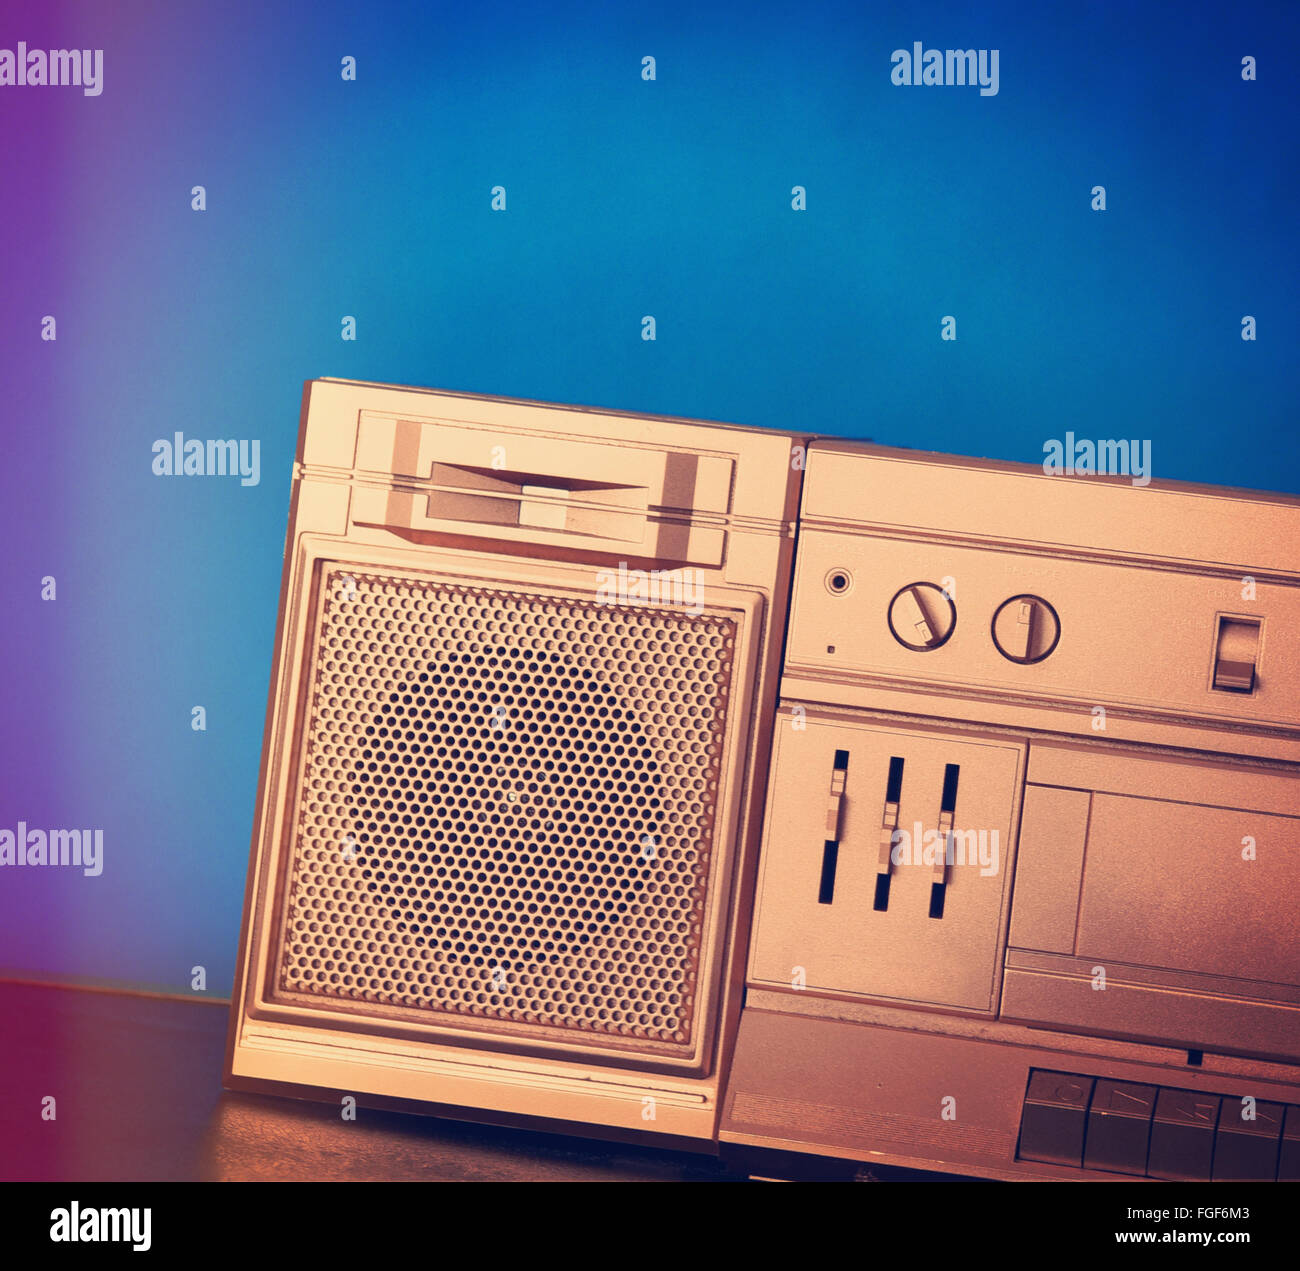 A closeup or a speaker of a retro gold boombox eighties stereo with a blue background for a music or sound concept. - Stock Image